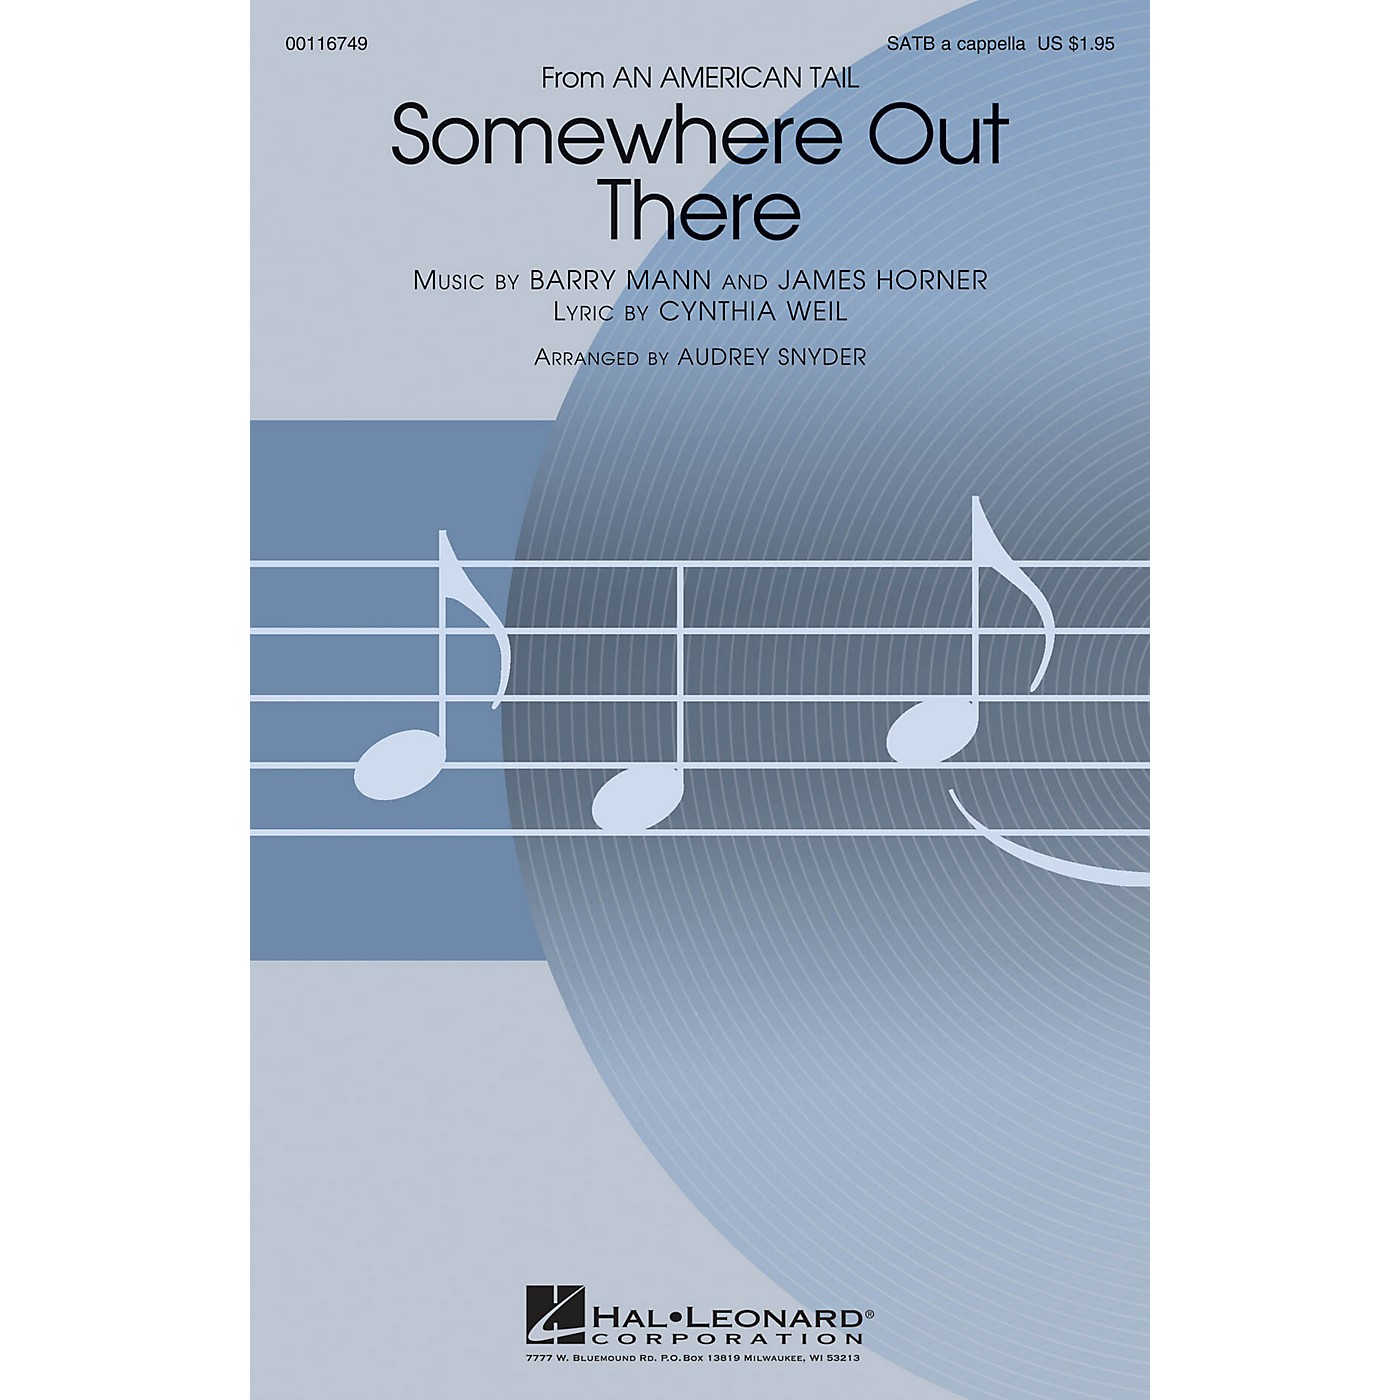 Hal Leonard Somewhere Out There (from An American Tale) SATB a cappella arranged by Audrey Snyder thumbnail